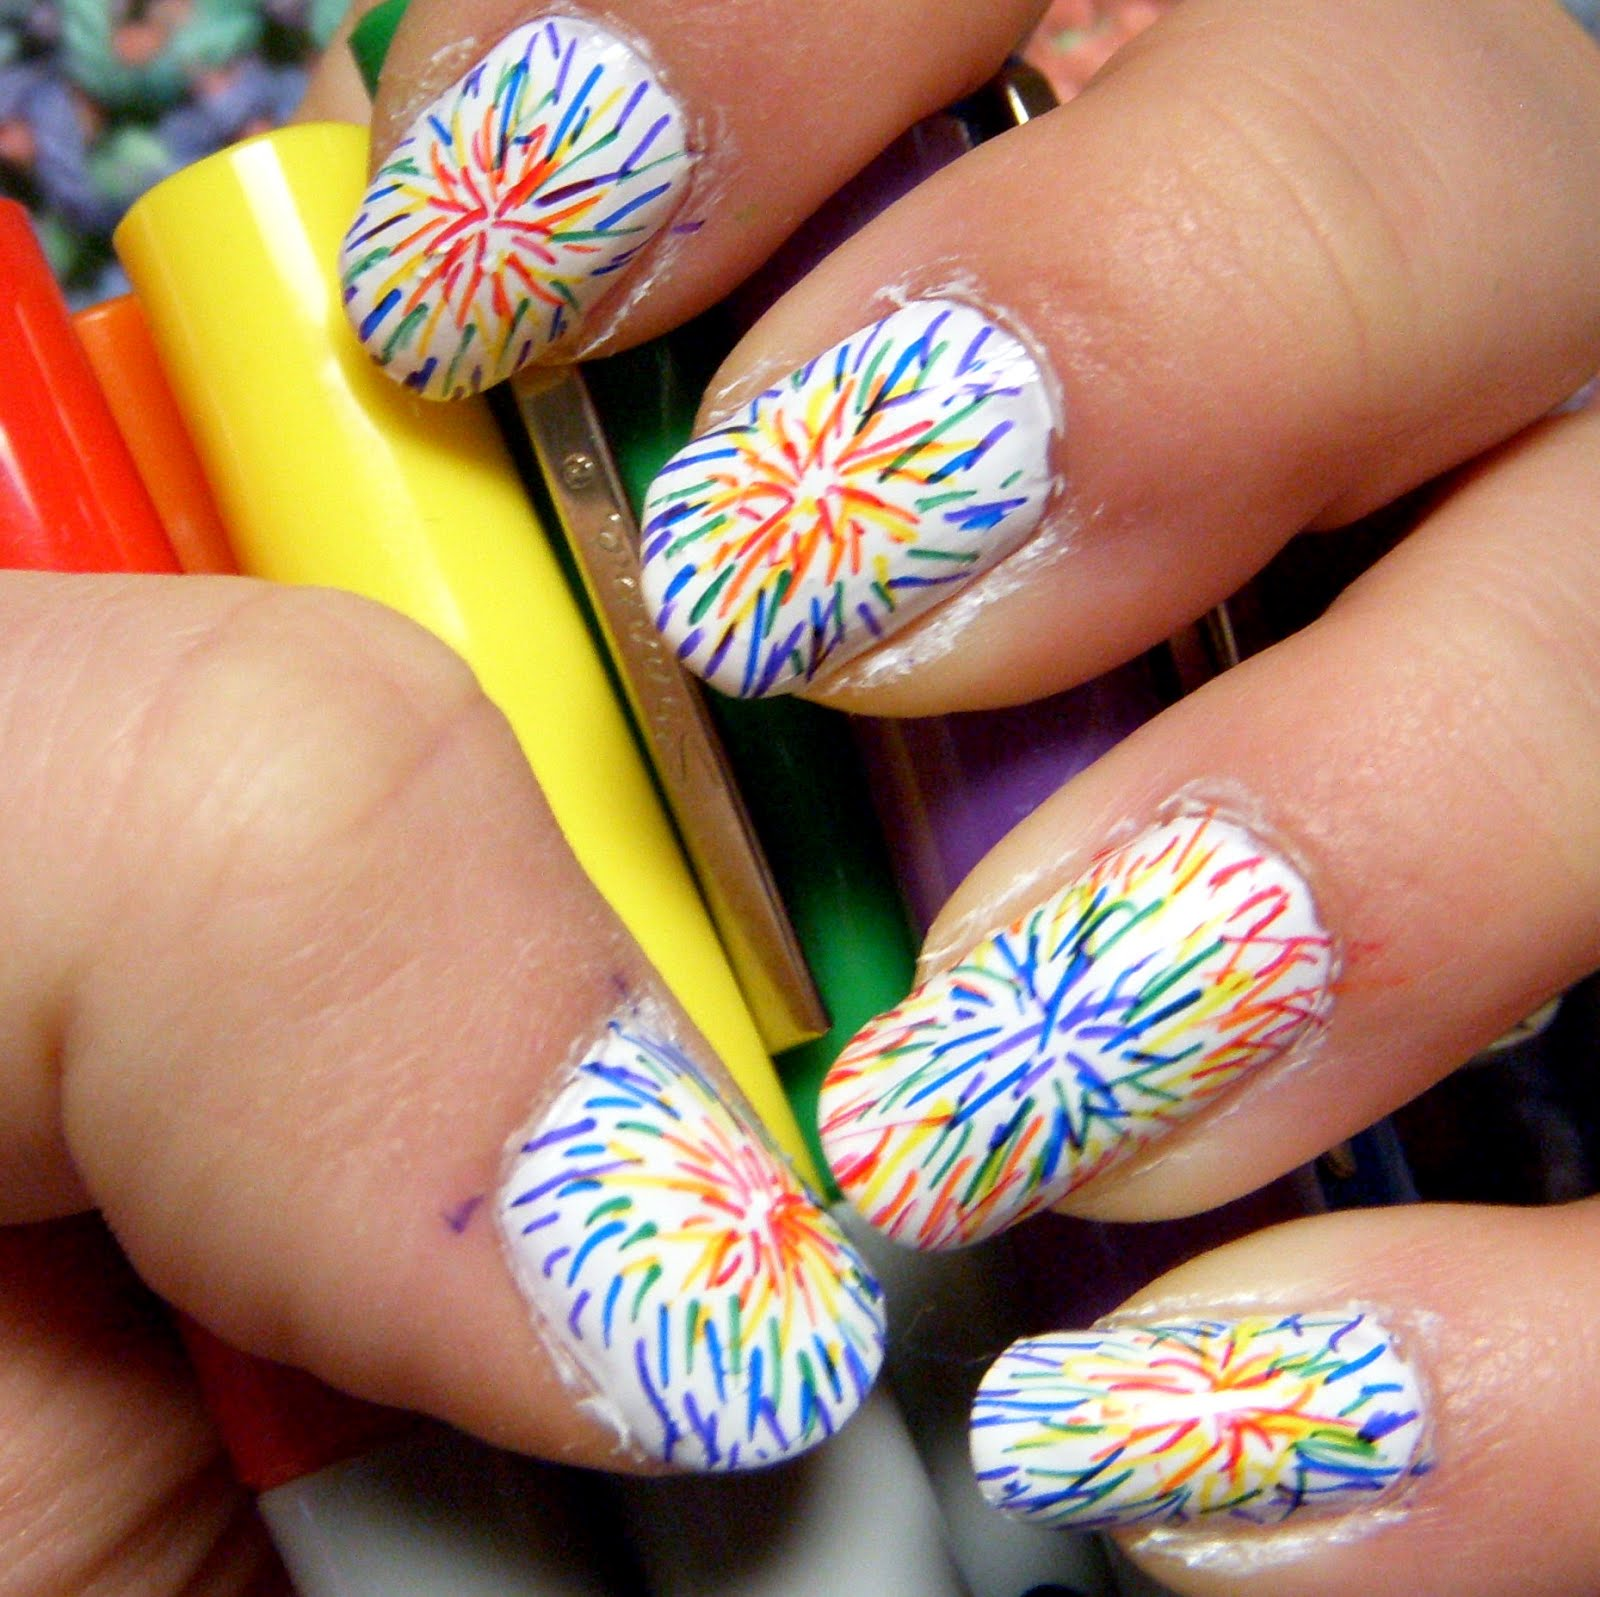 The Awesome Awesome easy to do nail design 2015 Digital Photography